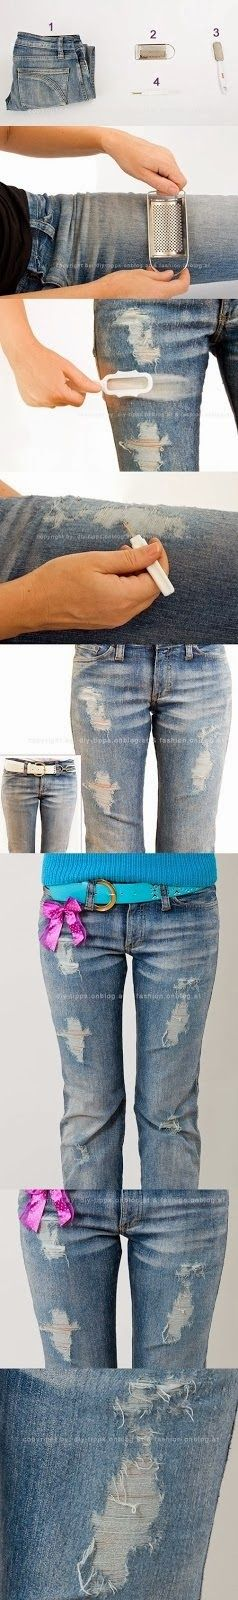 Just in case I ever want to distress jeans